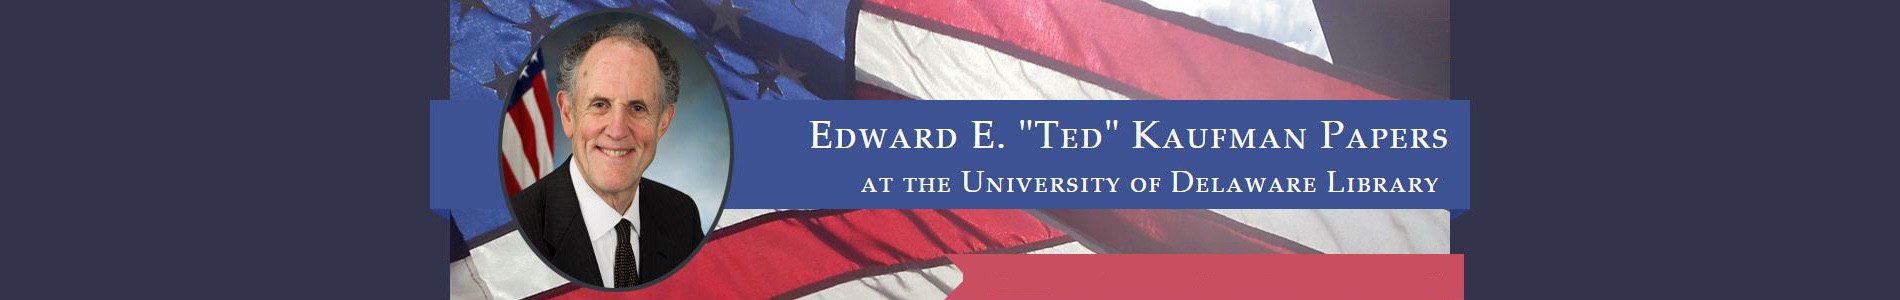 Banner Image for Edward E.